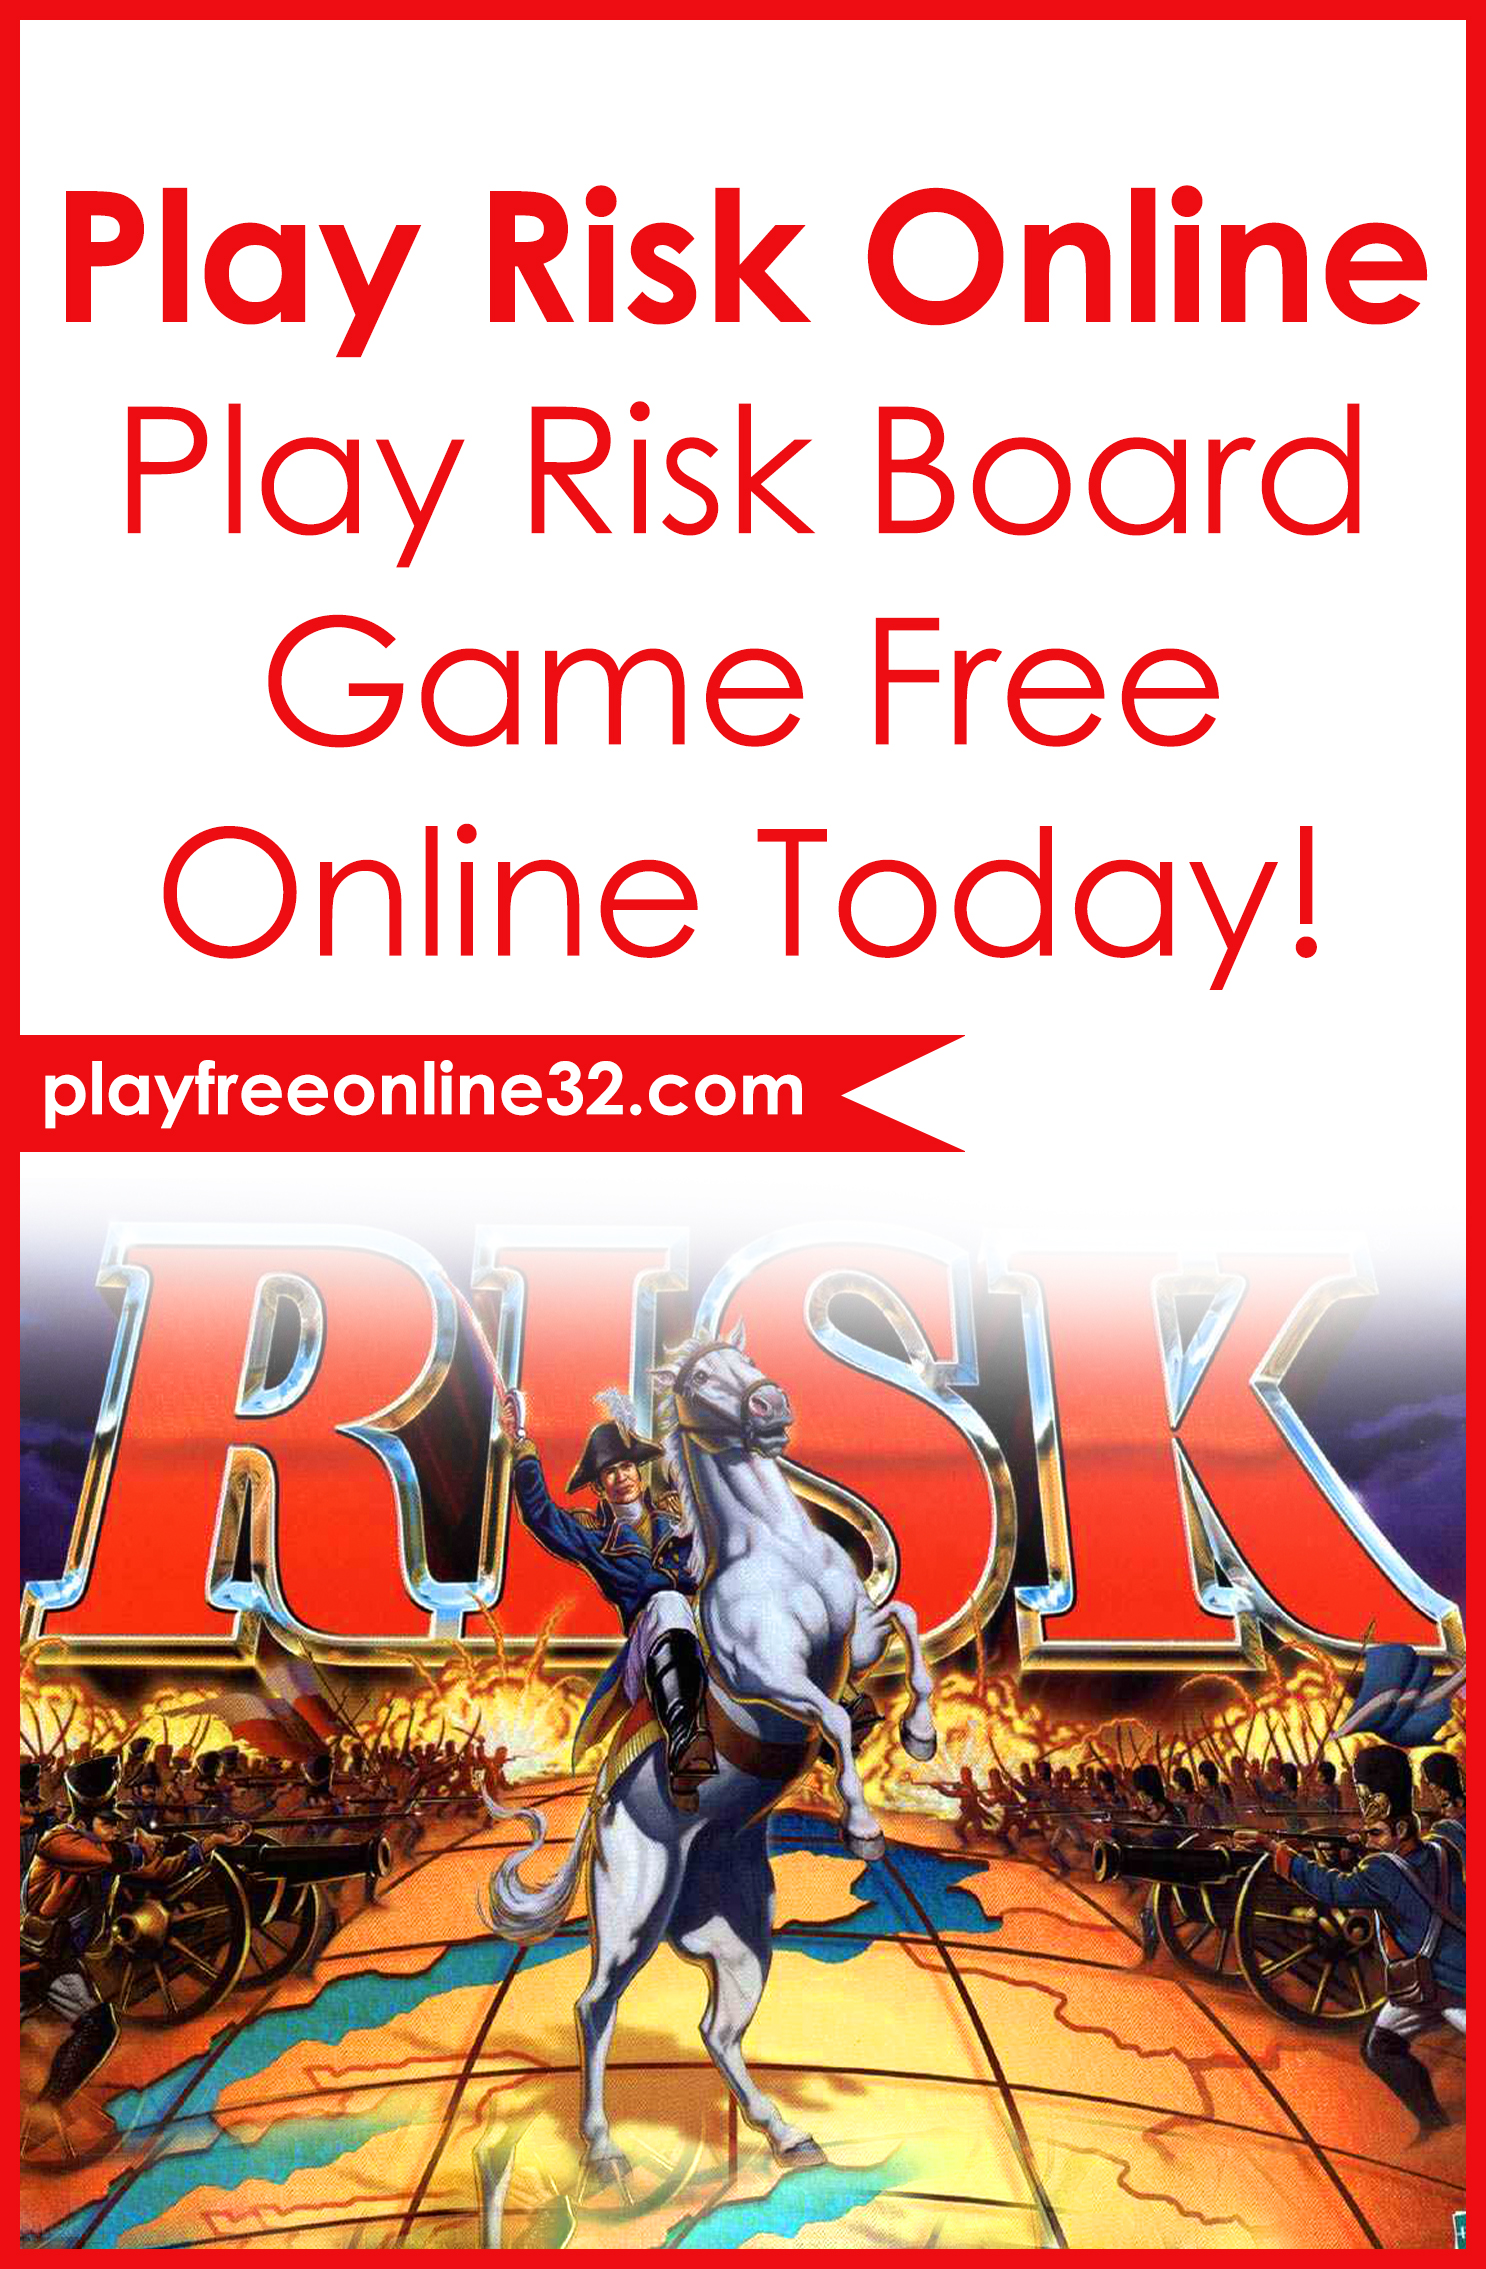 Play Risk Online • Play Risk Board Game Free Online Today!